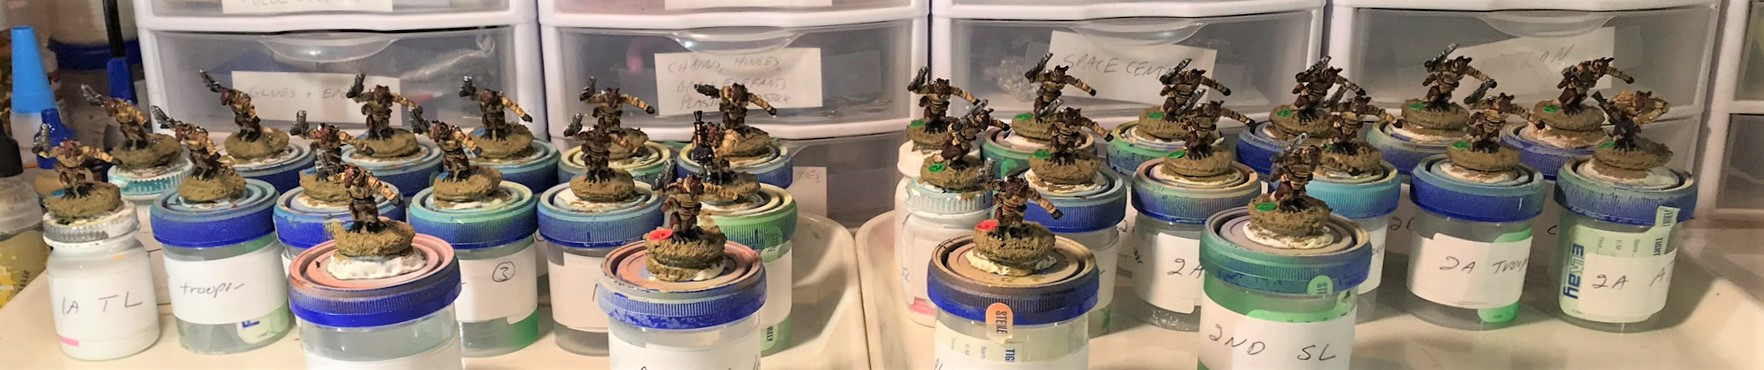 15 platoon initial bases